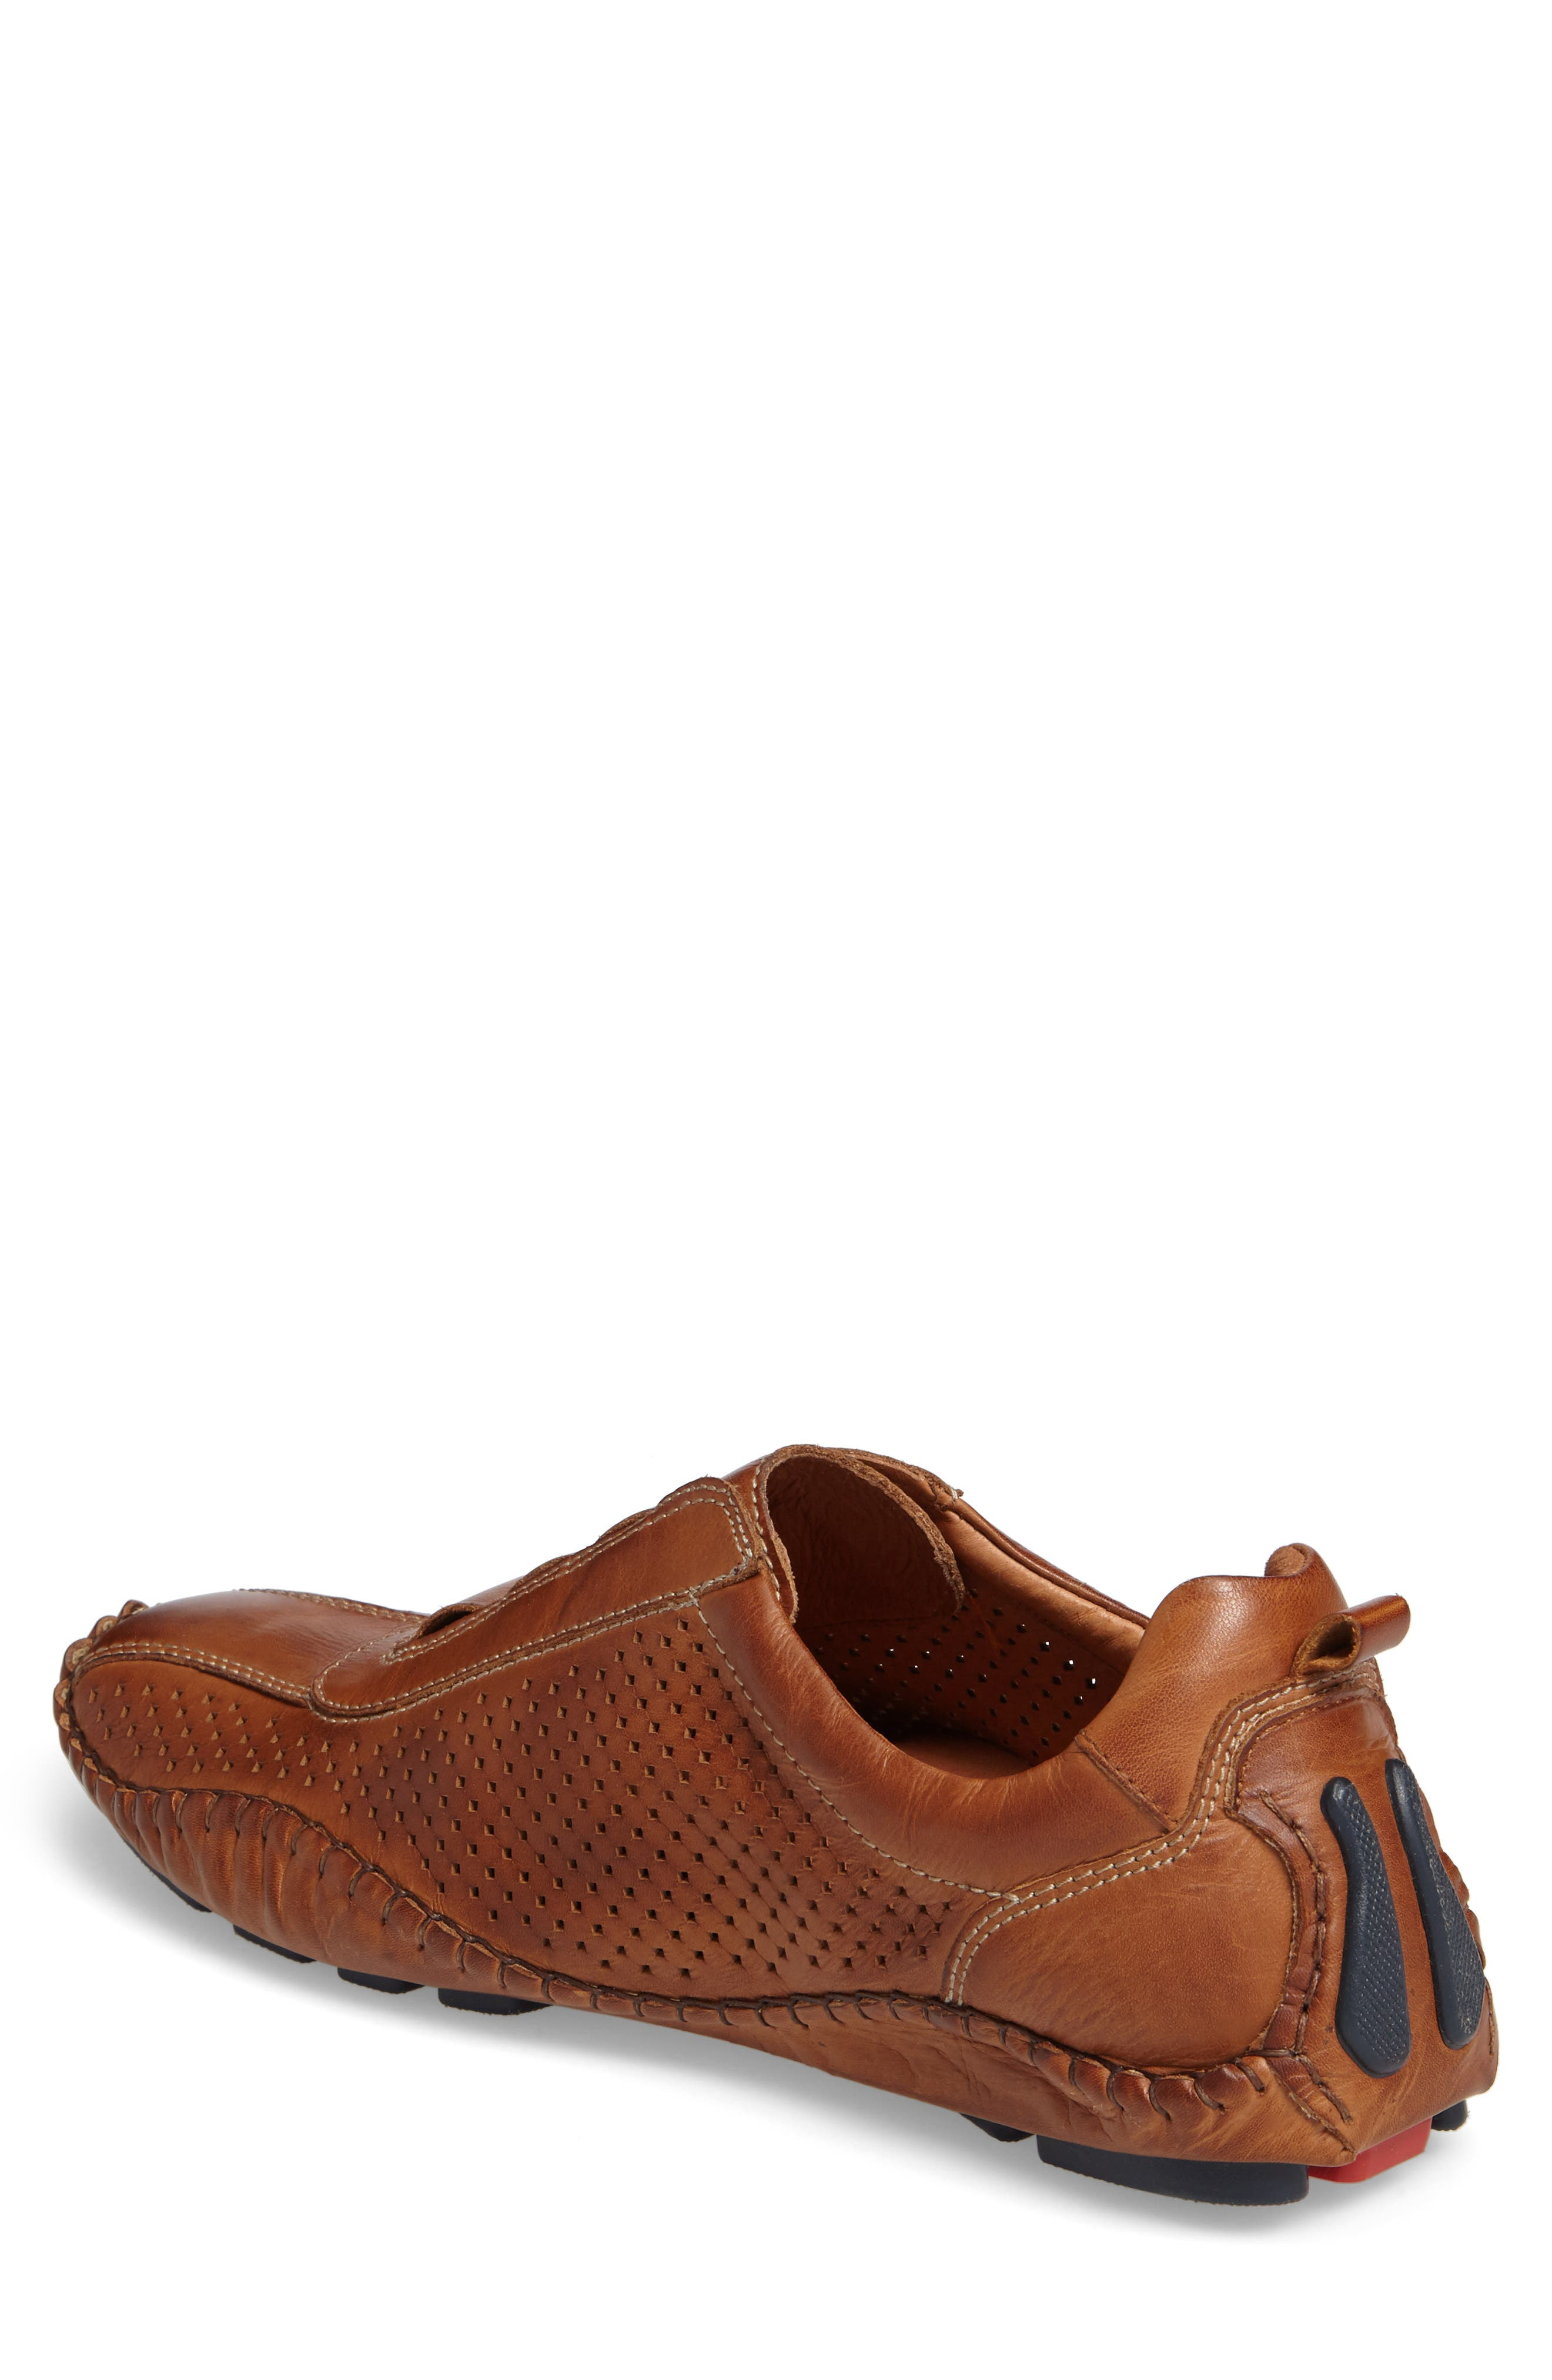 Fuencarral Driving Shoe,                             Alternate thumbnail 2, color,                             BRANDY LEATHER